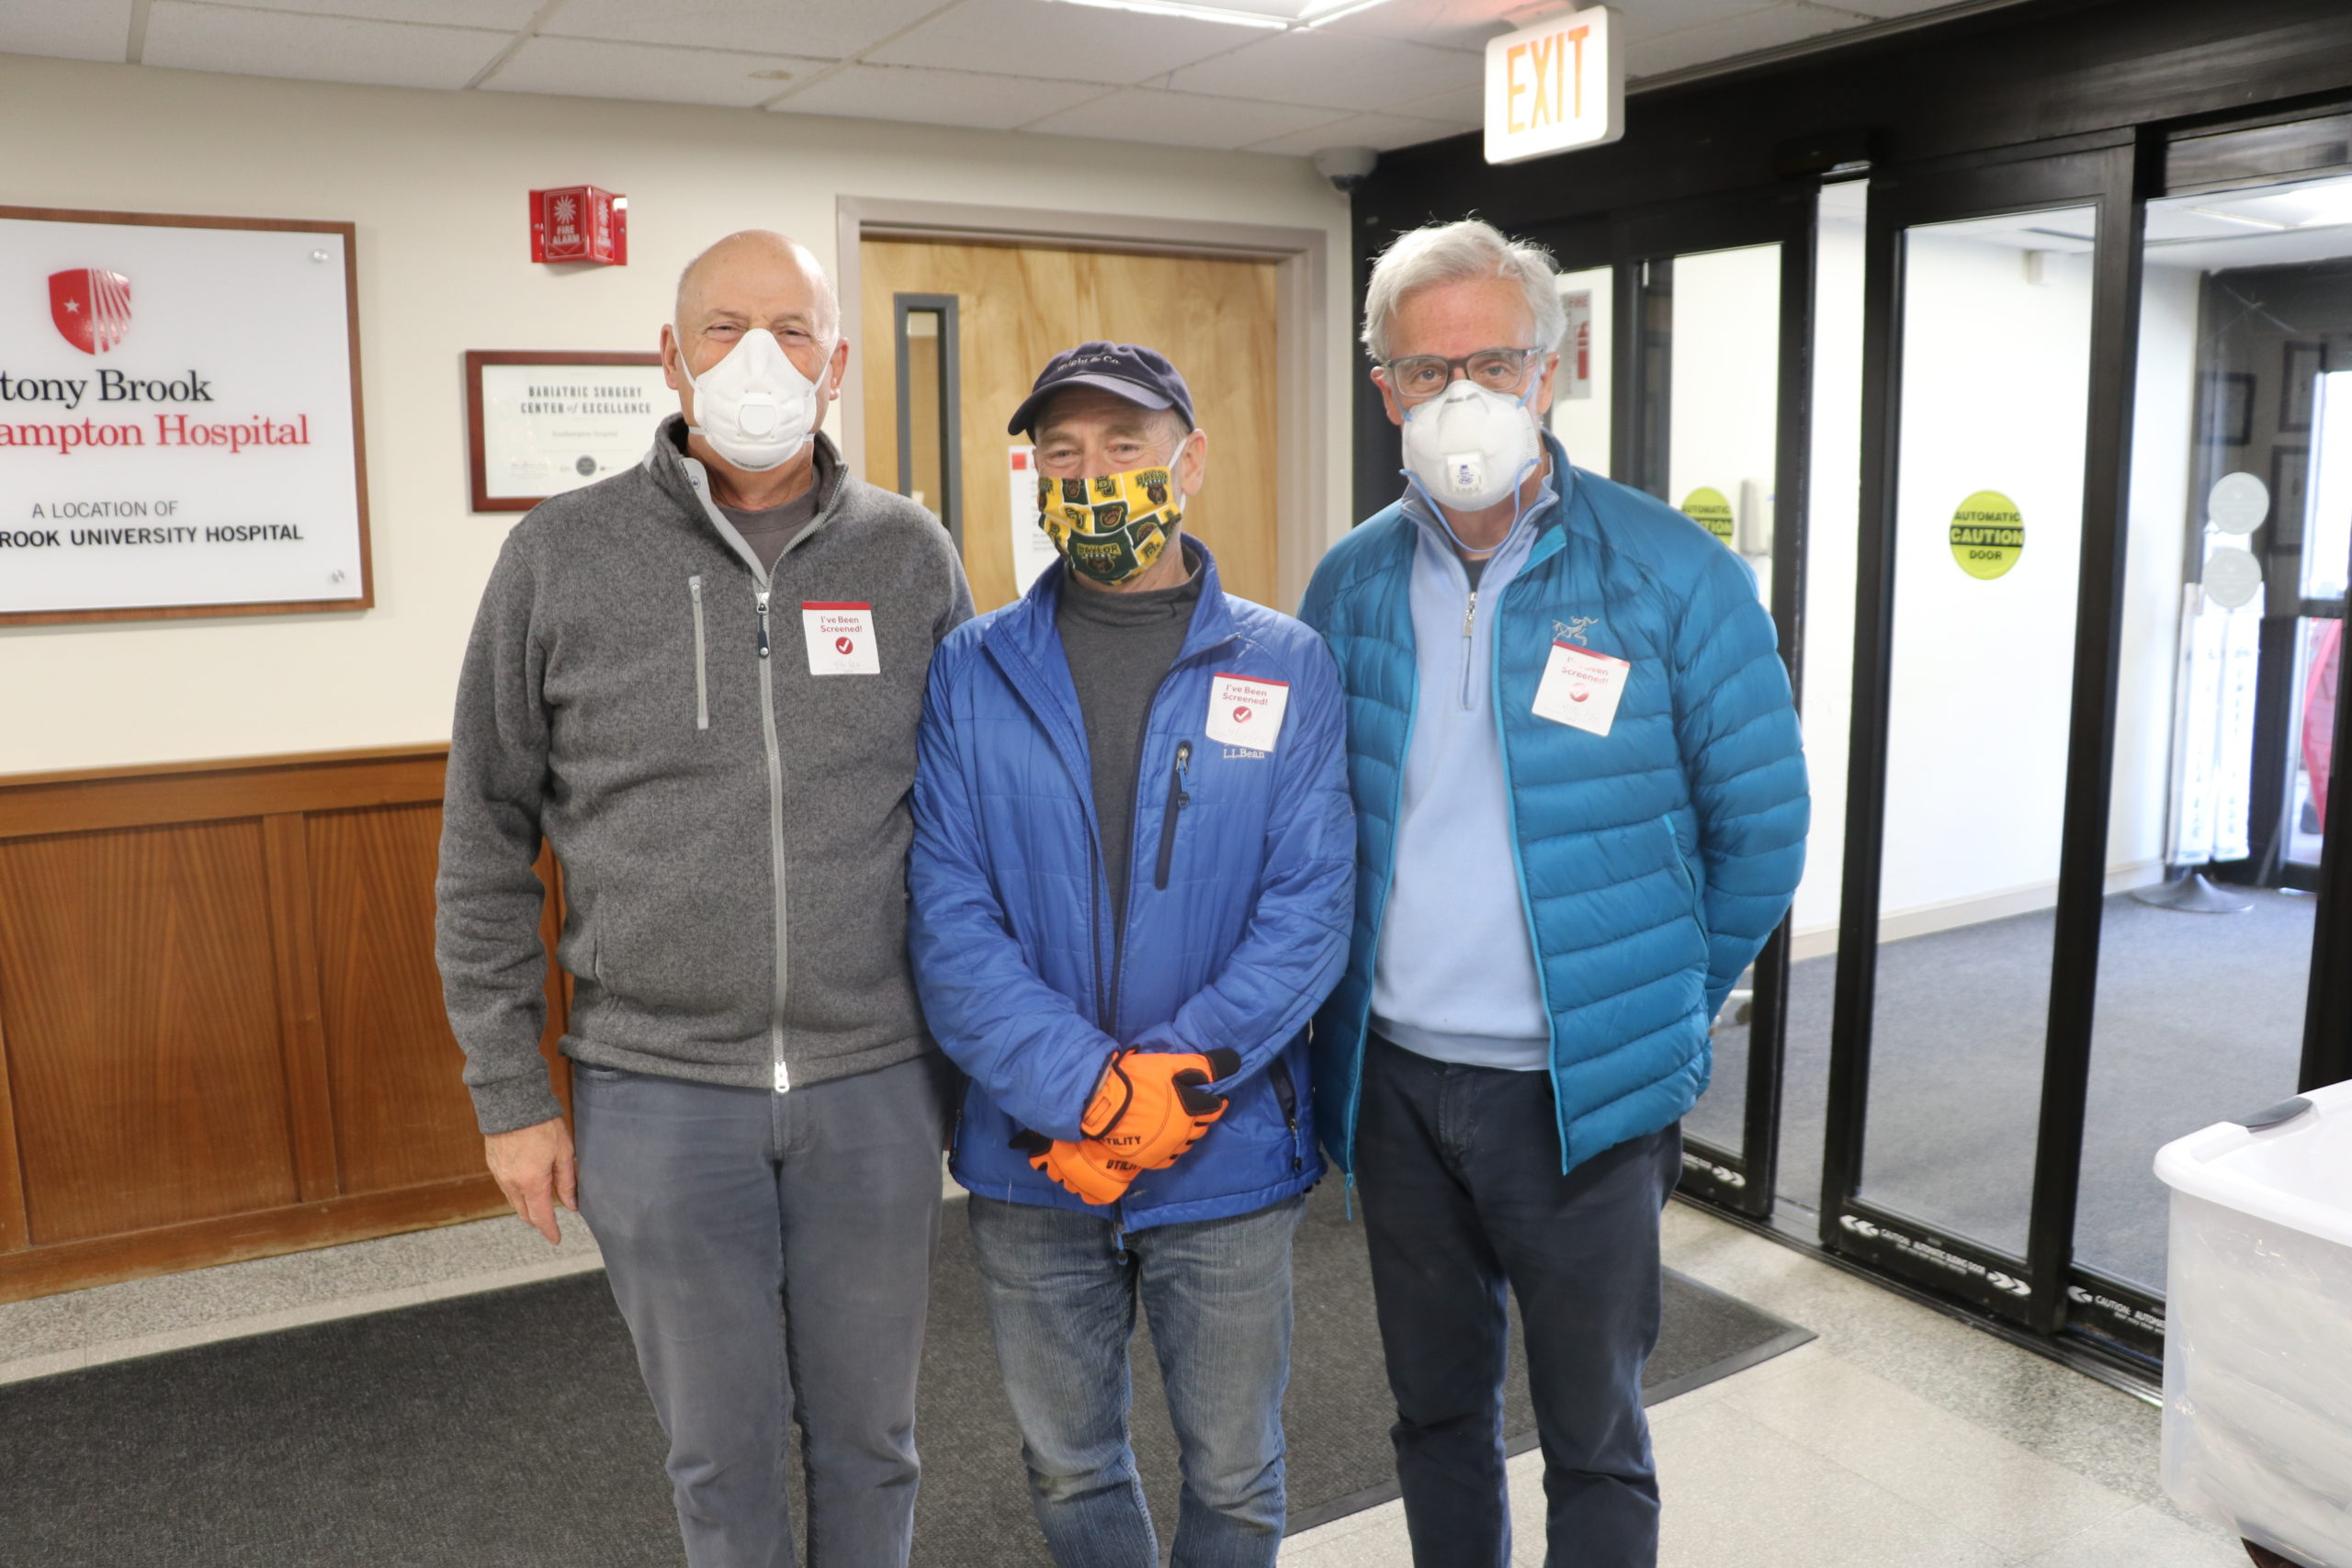 Ken Wright, Chair, Southampton Hospital Association, Philip Alford of Wright & Company Construction, and Michael Reilly, Reilly Architectural; who, along with over a hundred East End volunteers, were instrumental in producing and hand-assembling thousands of protective isolation gowns for Stony Brook Southampton Hospital.